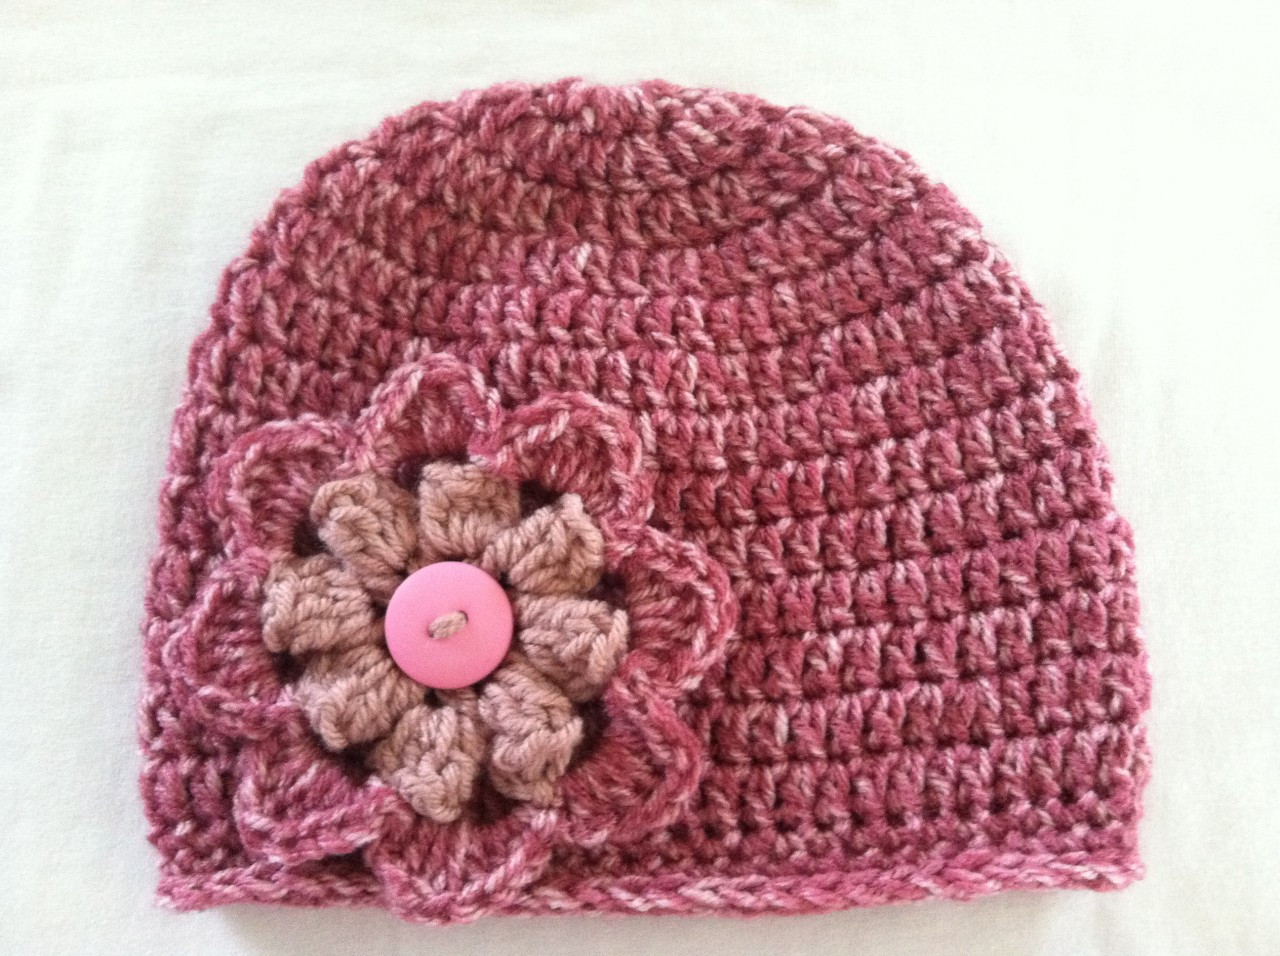 Crochet for Cancer Inspirational Crochet for Cancer Hat Patterns Of Contemporary 40 Pictures Crochet for Cancer